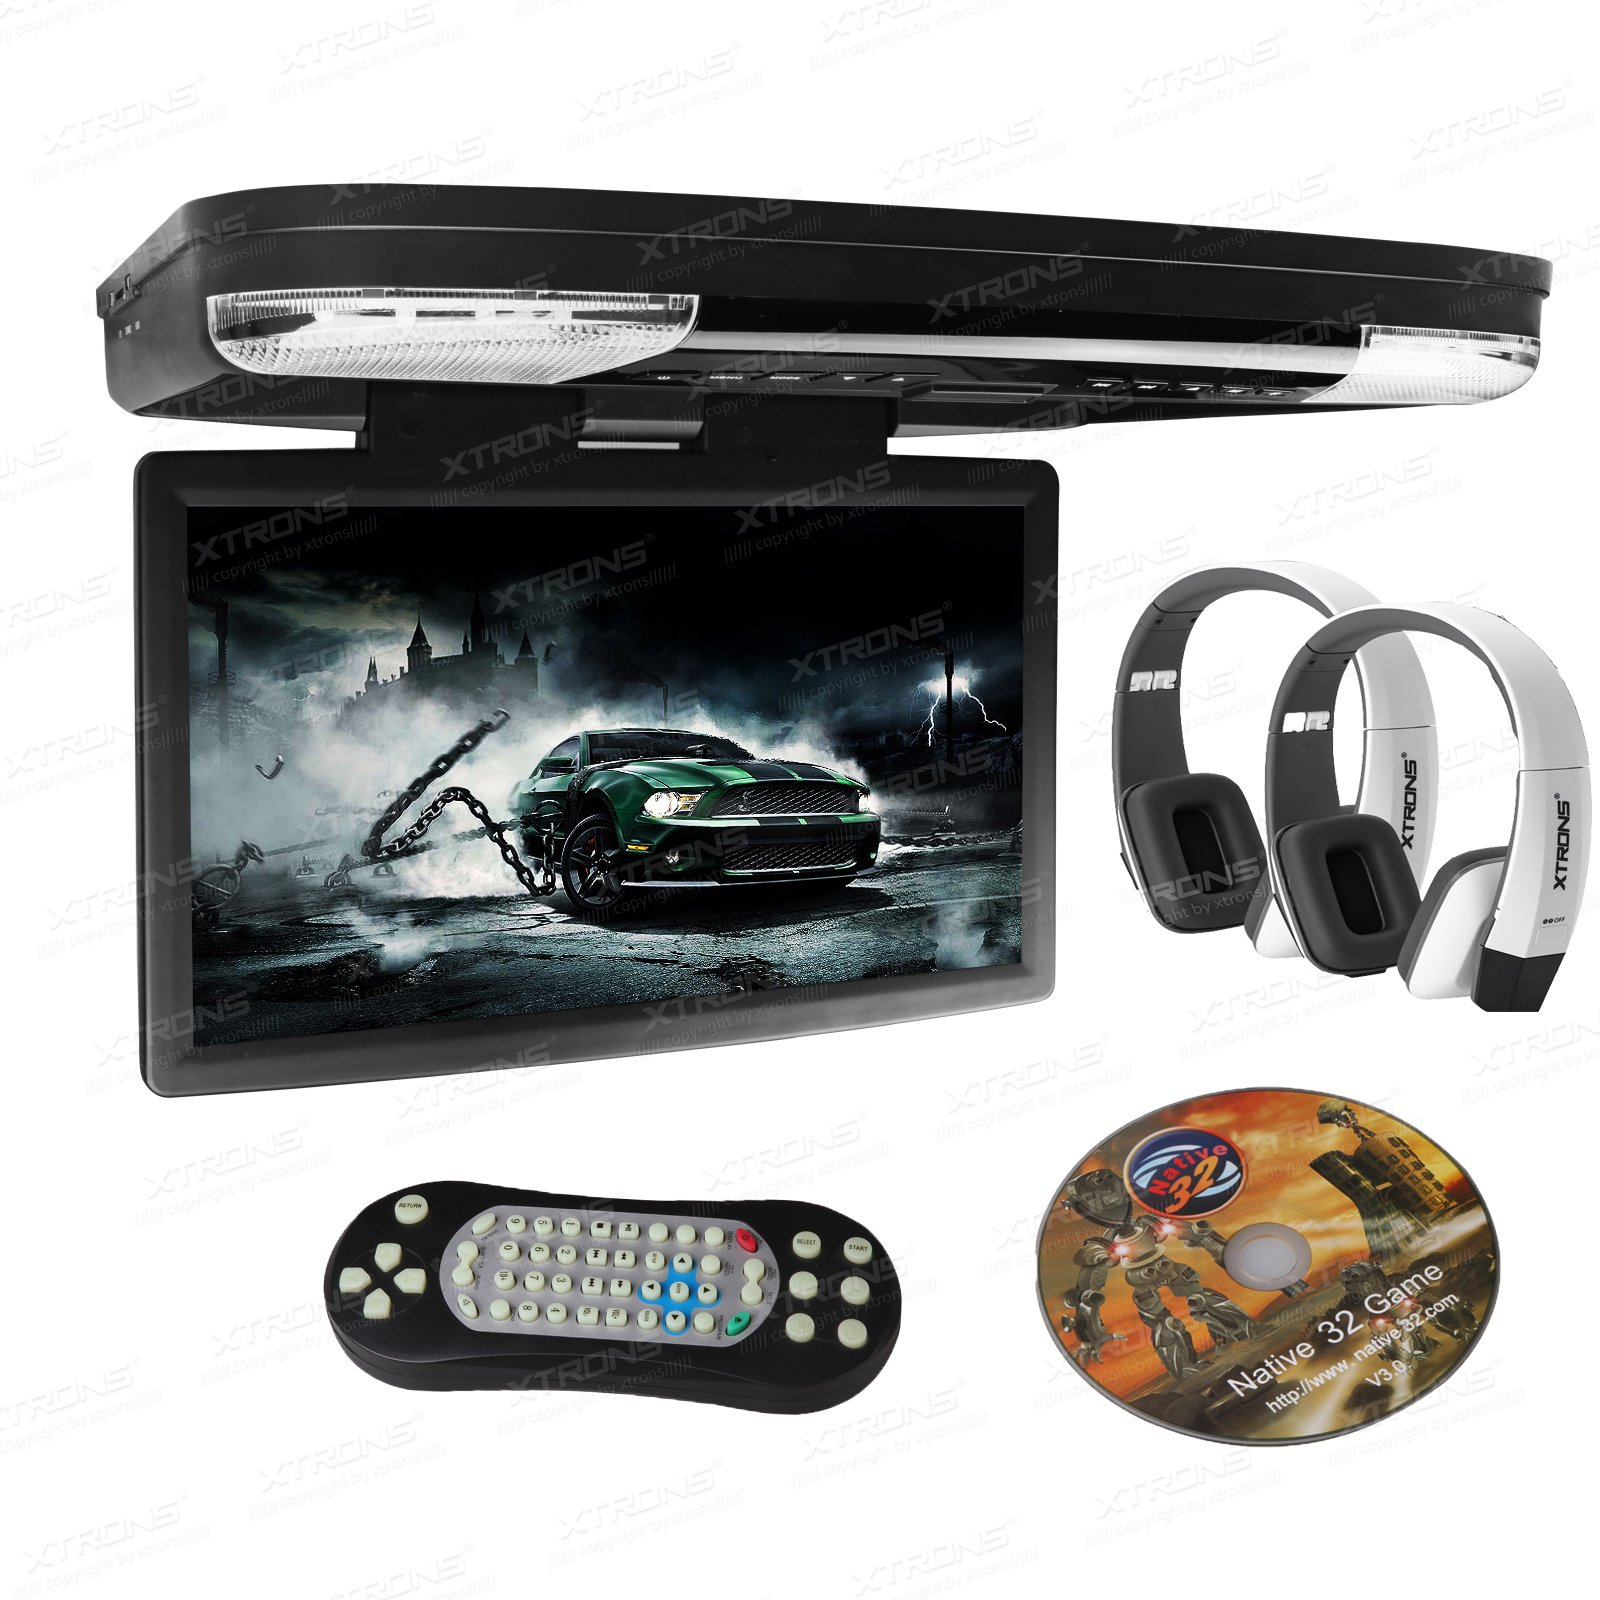 XTRONS 15.6 Inch 1080P Video HD Digital Widescreen Car Overhead Coach Caravan Roof Flip Down DVD Player Game Disc HDMI Port New Version White IR Headphones Included